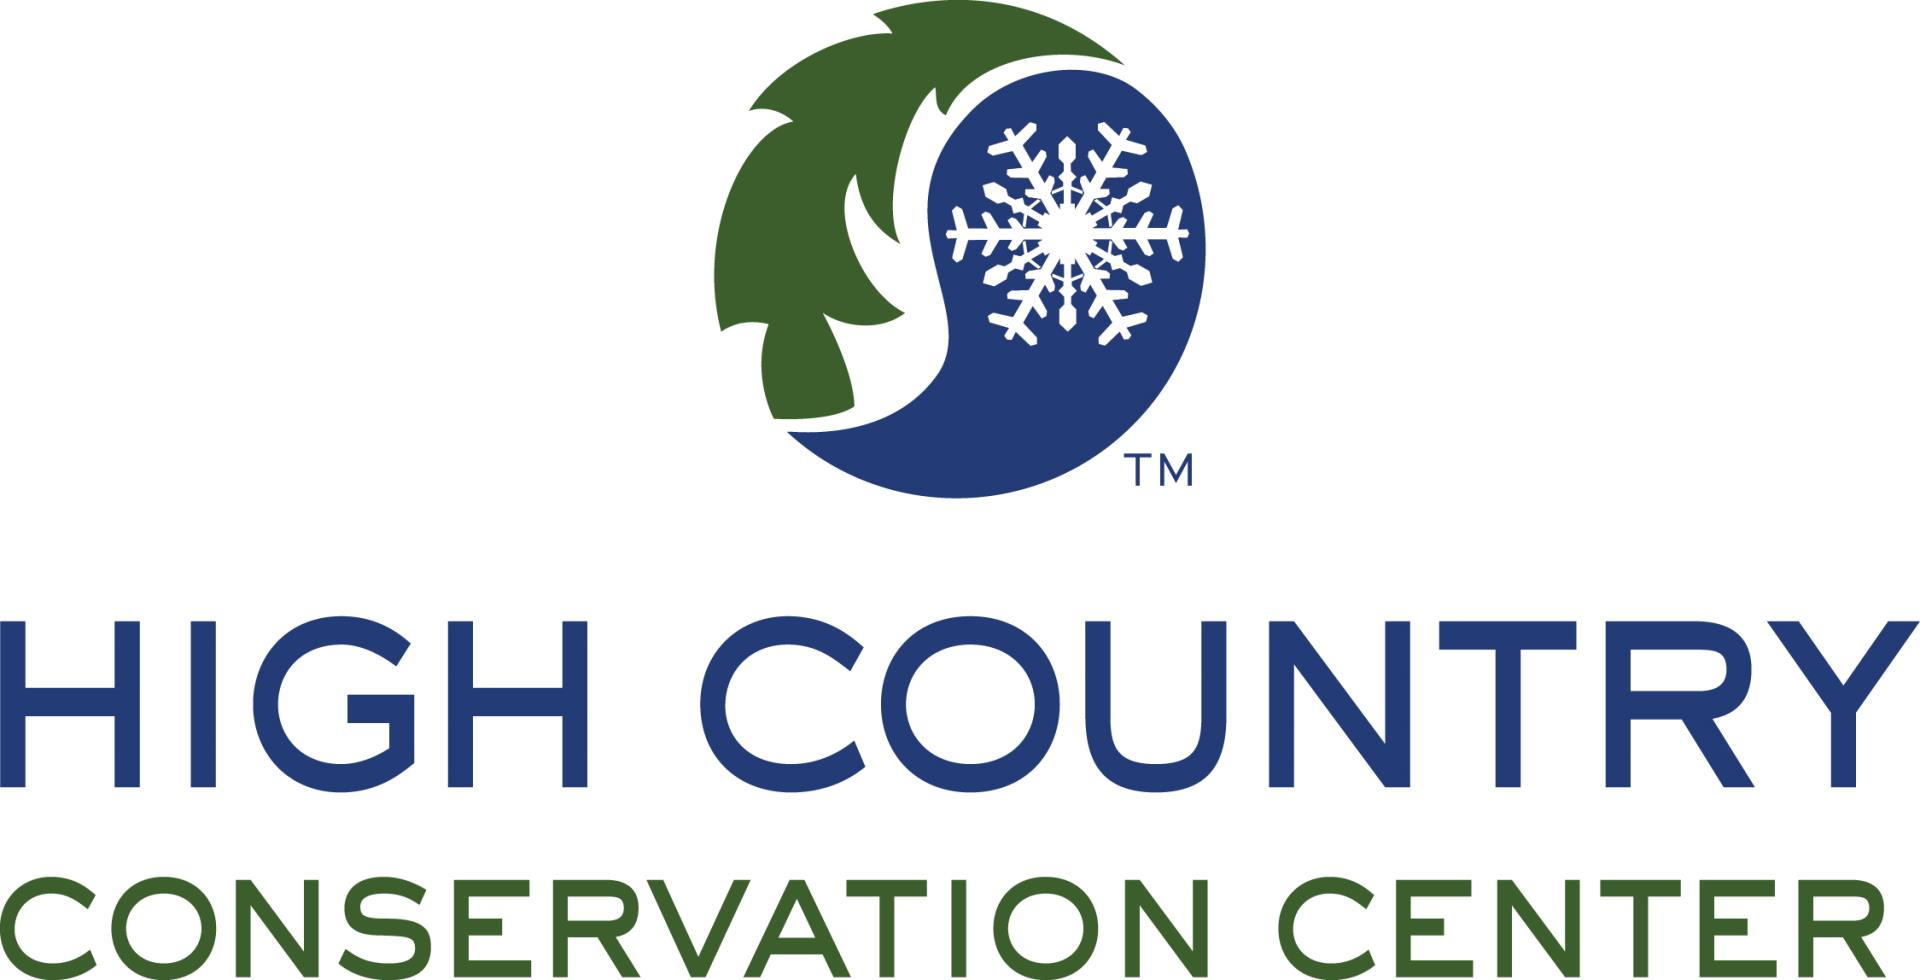 high country conservation center logo in blue and green